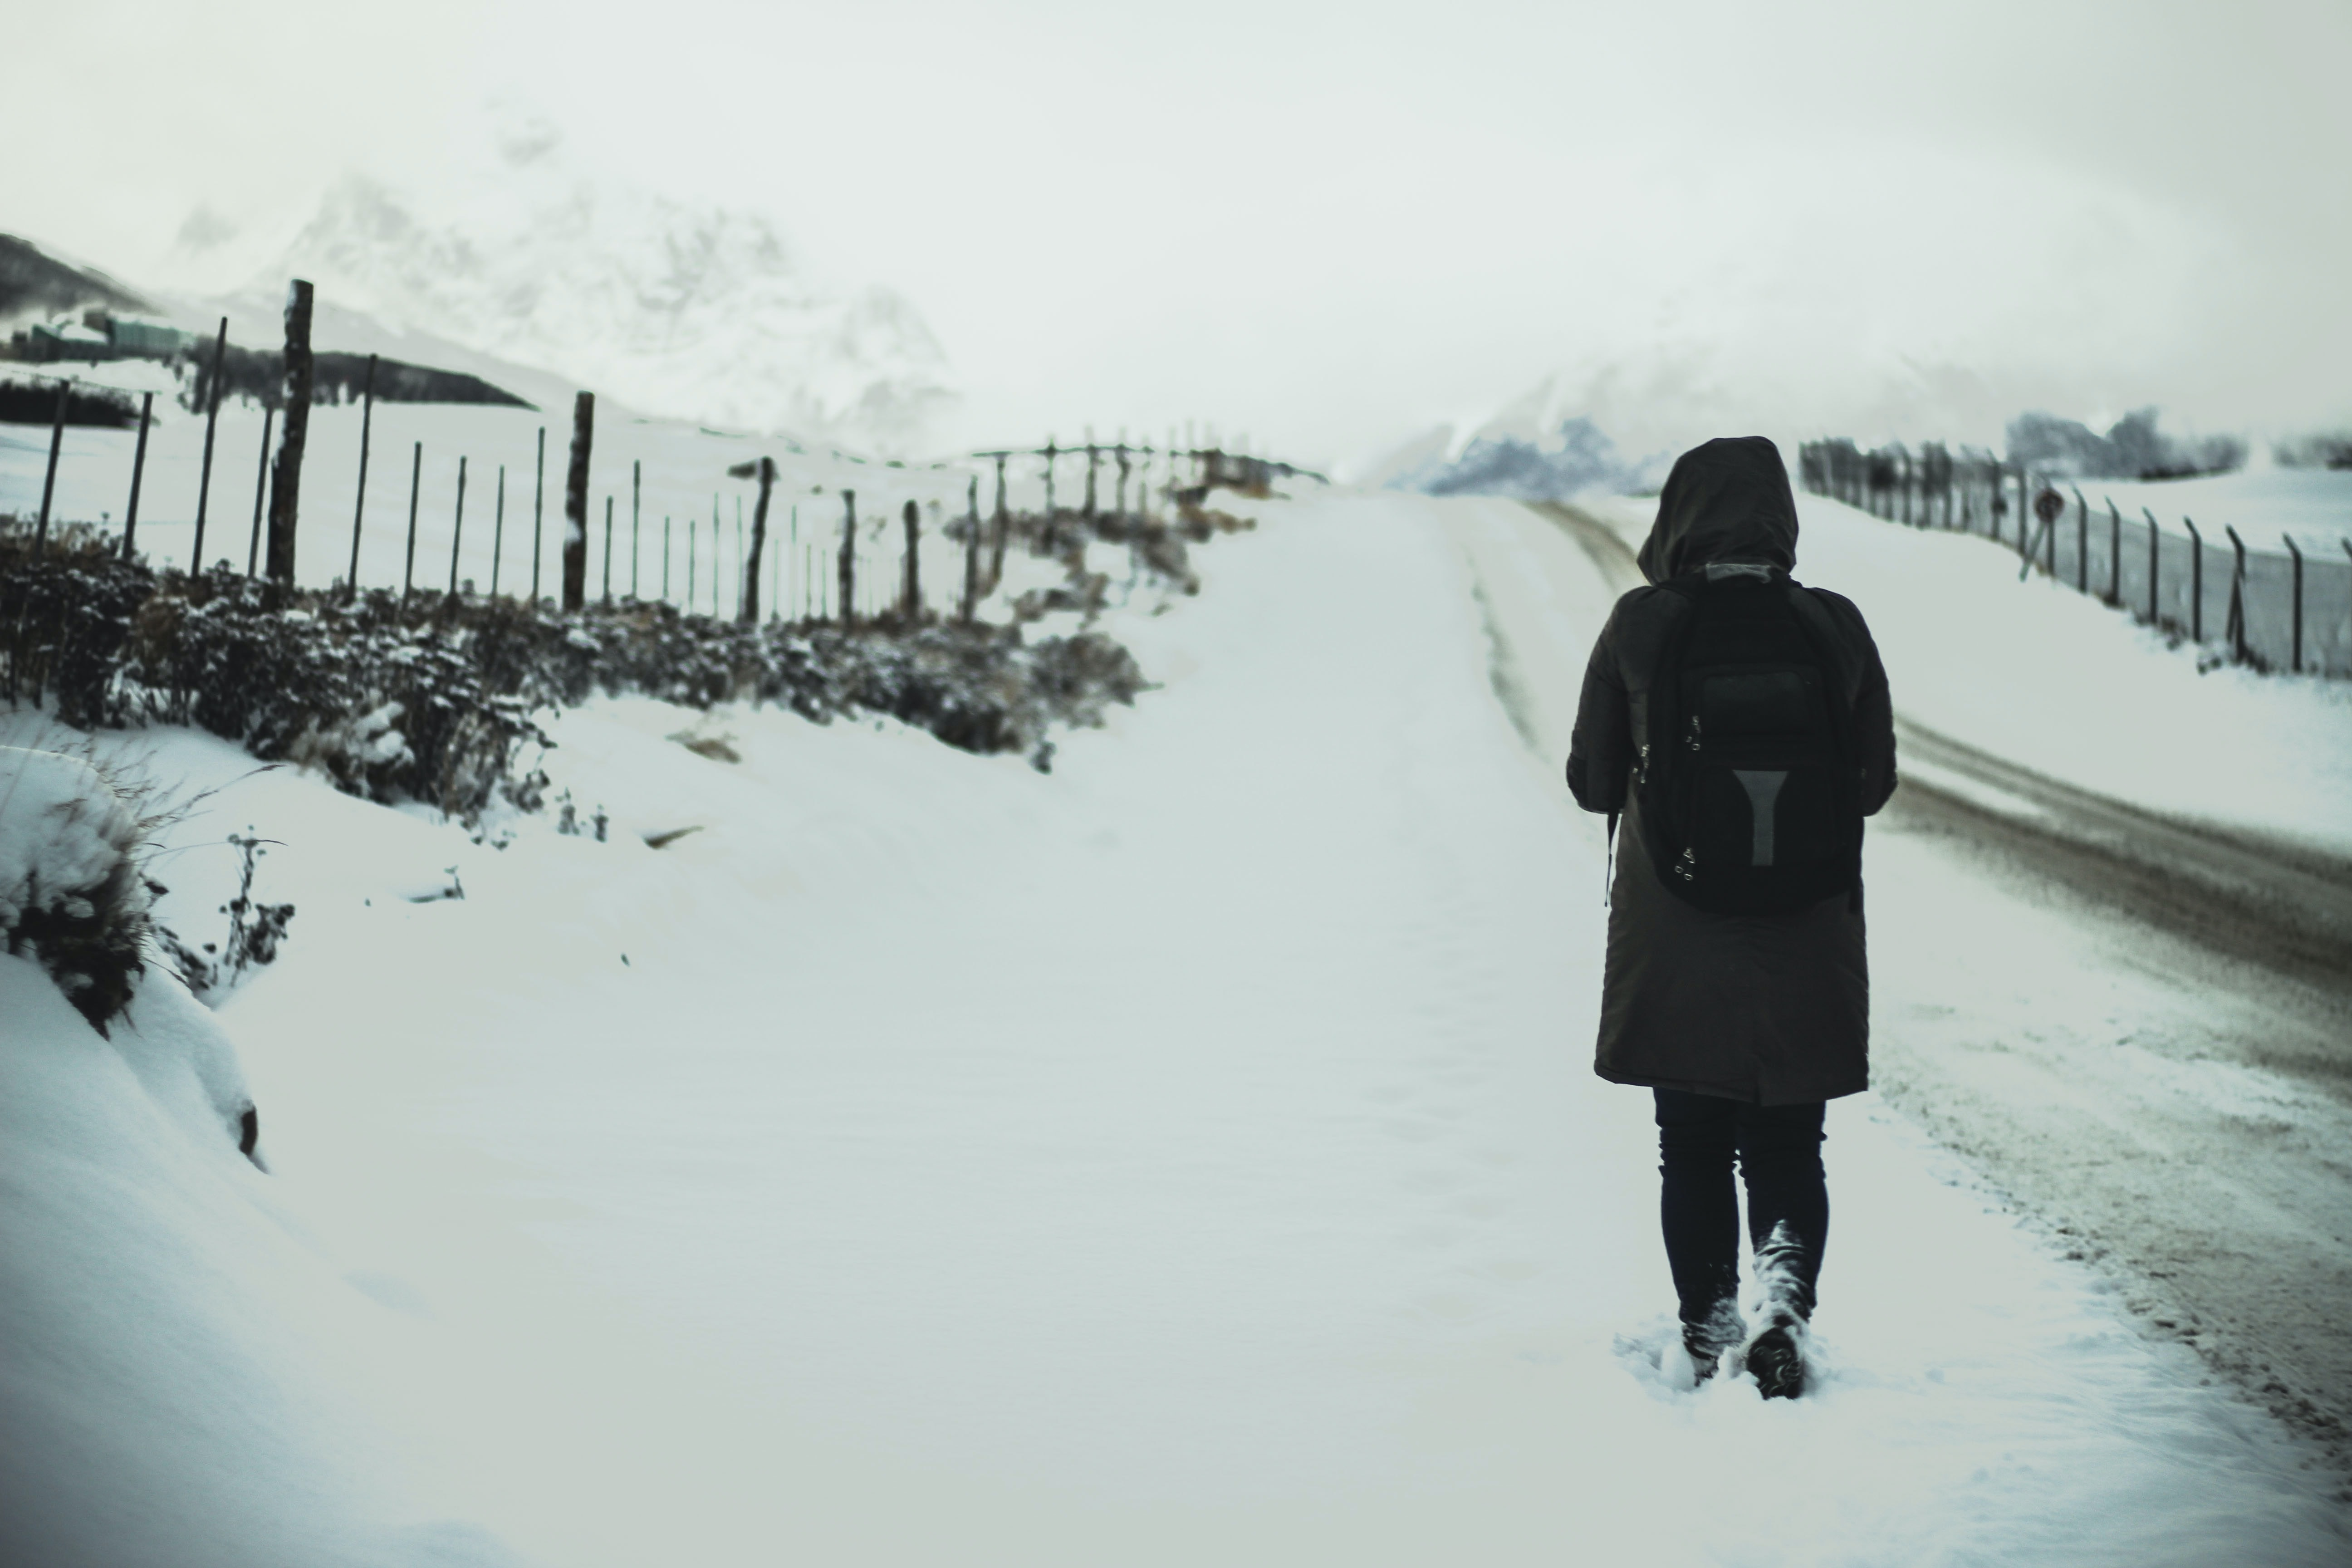 A person walking alongside a fence on a snow covered country road in Ushuaia in Argentina